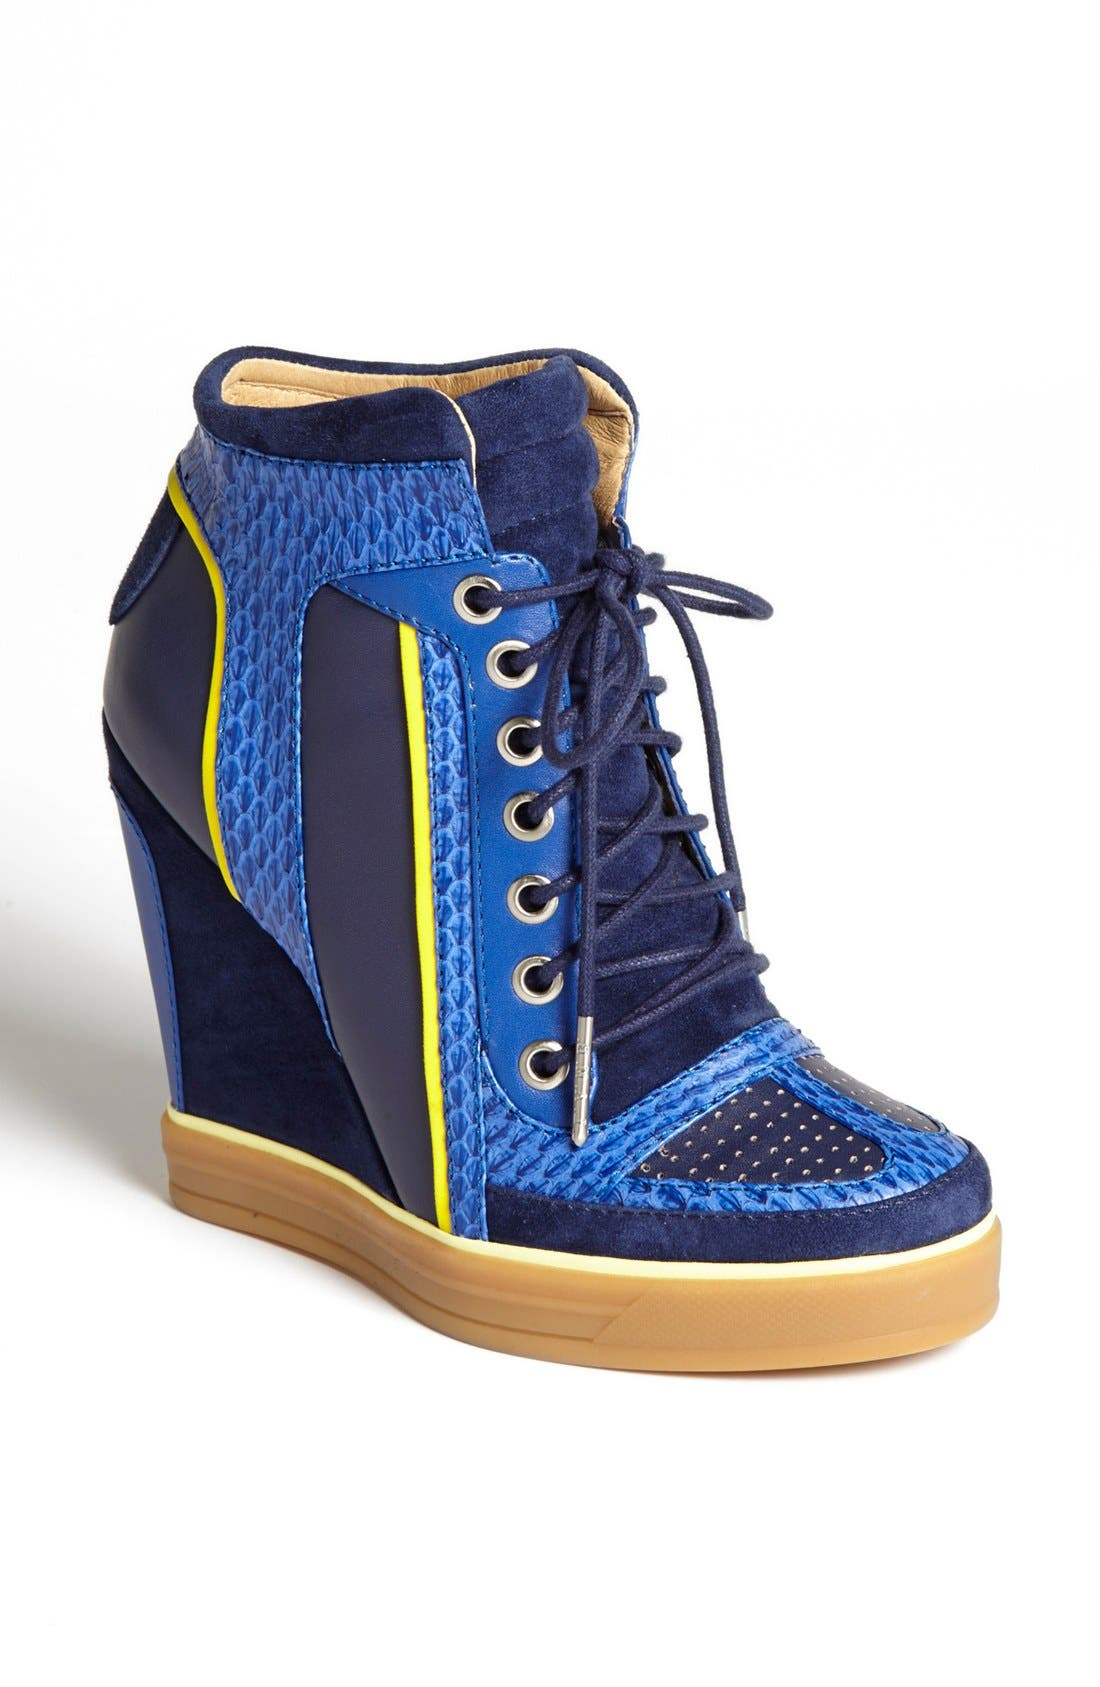 Alternate Image 1 Selected - L.A.M.B. 'Summer'  High Top Wedge Sneaker